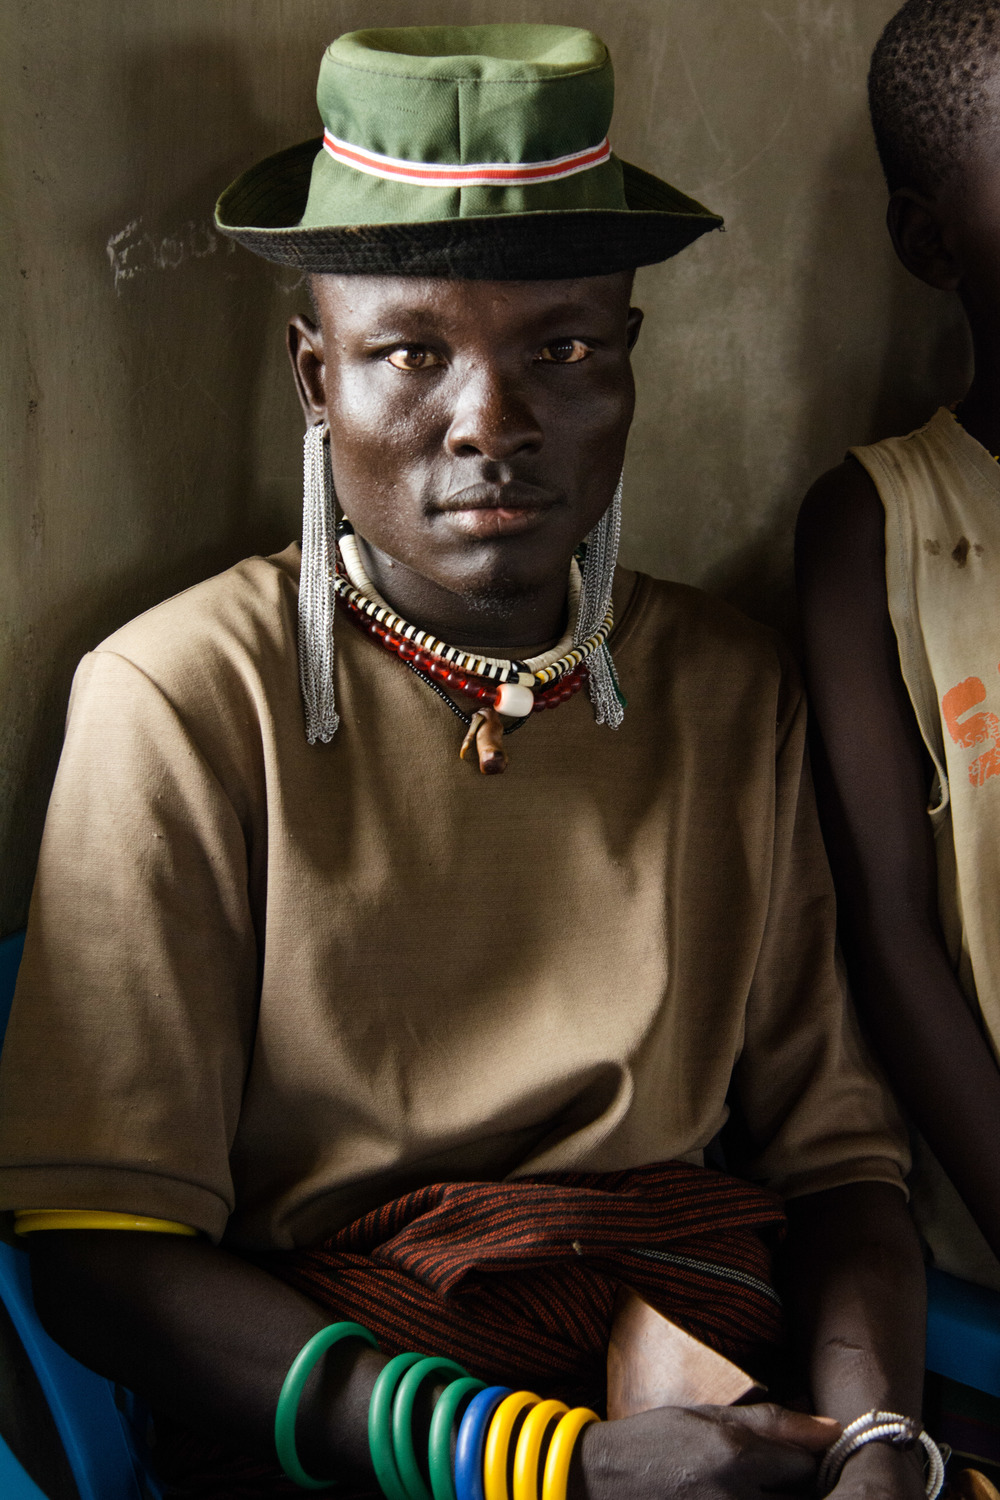 A beautiful Turkana man